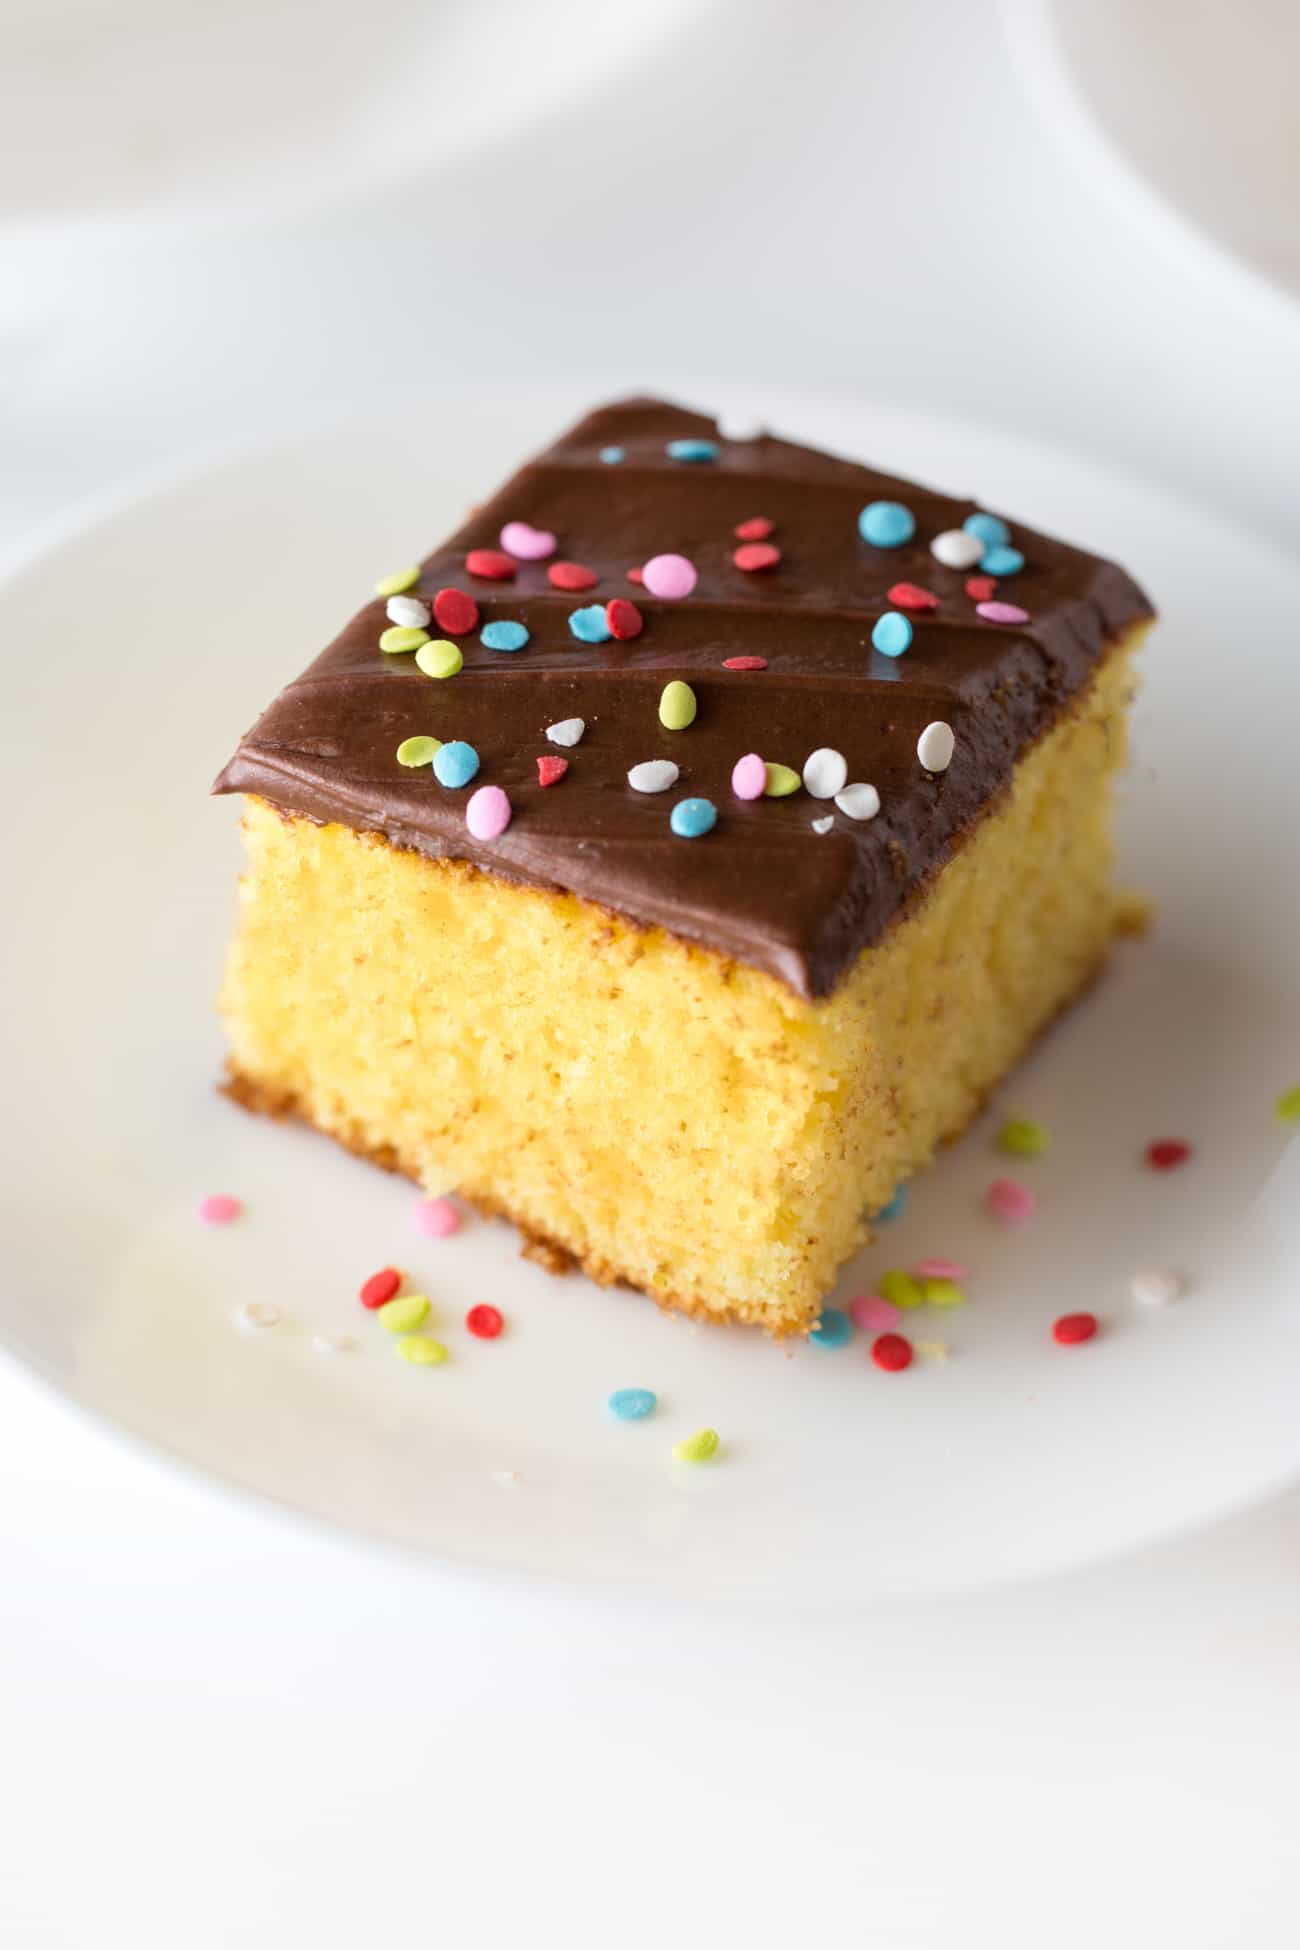 Square slice of yellow cake with easy chocolate frosting with rainbow sprinkle quins on top. On small white plate.